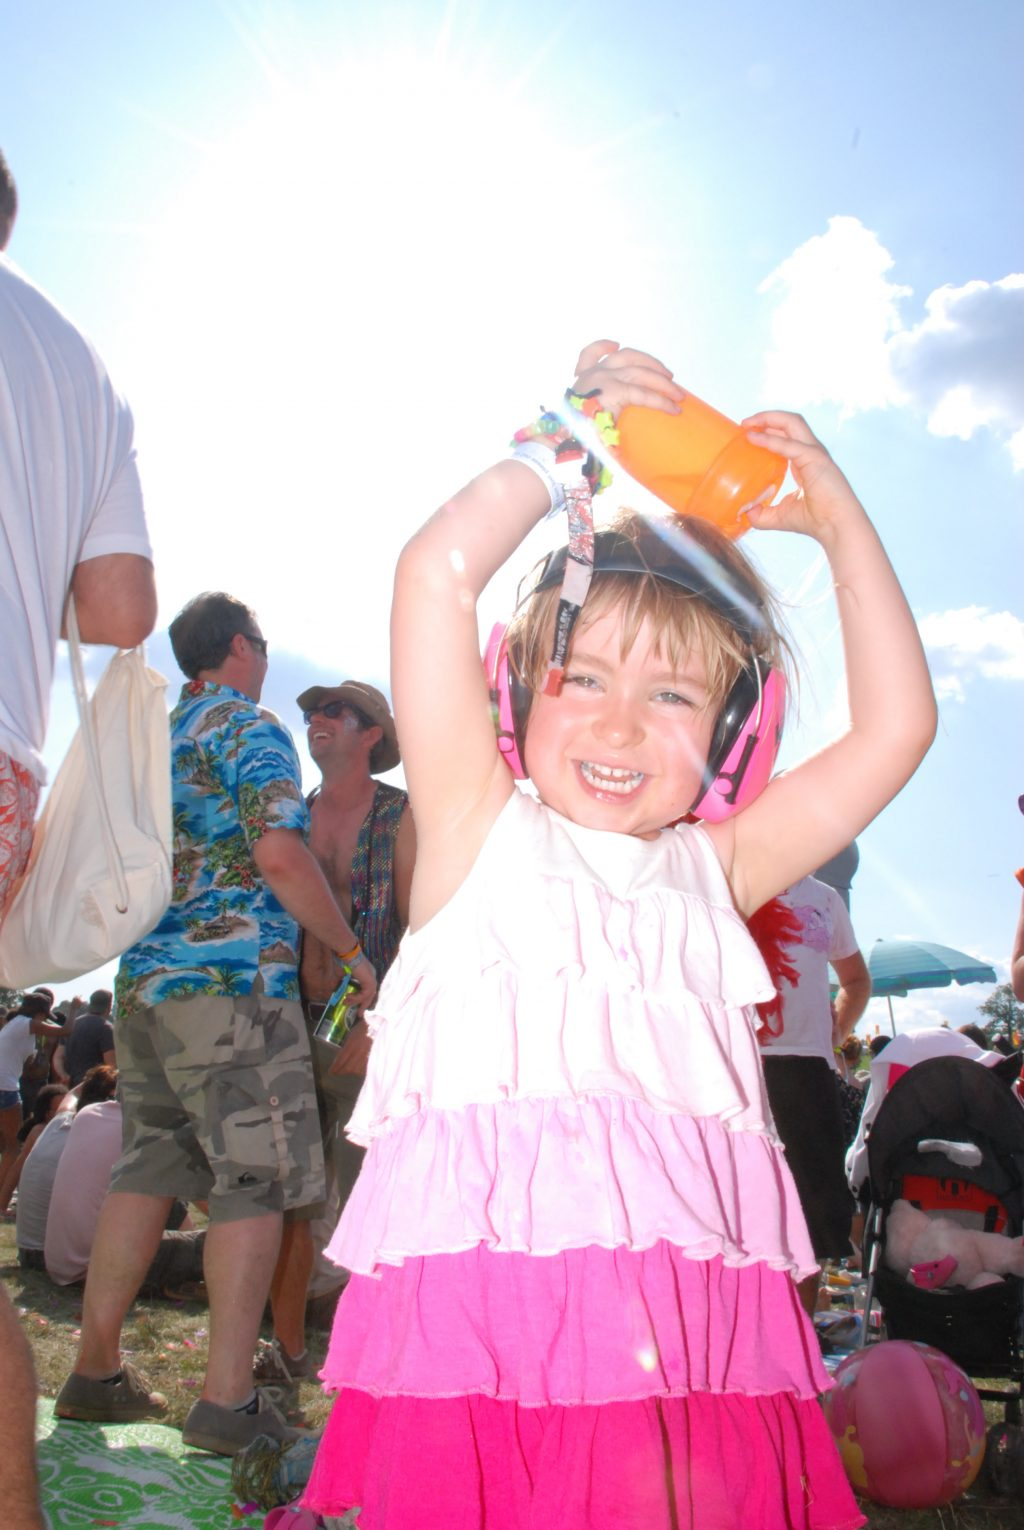 essential items for a kids festival